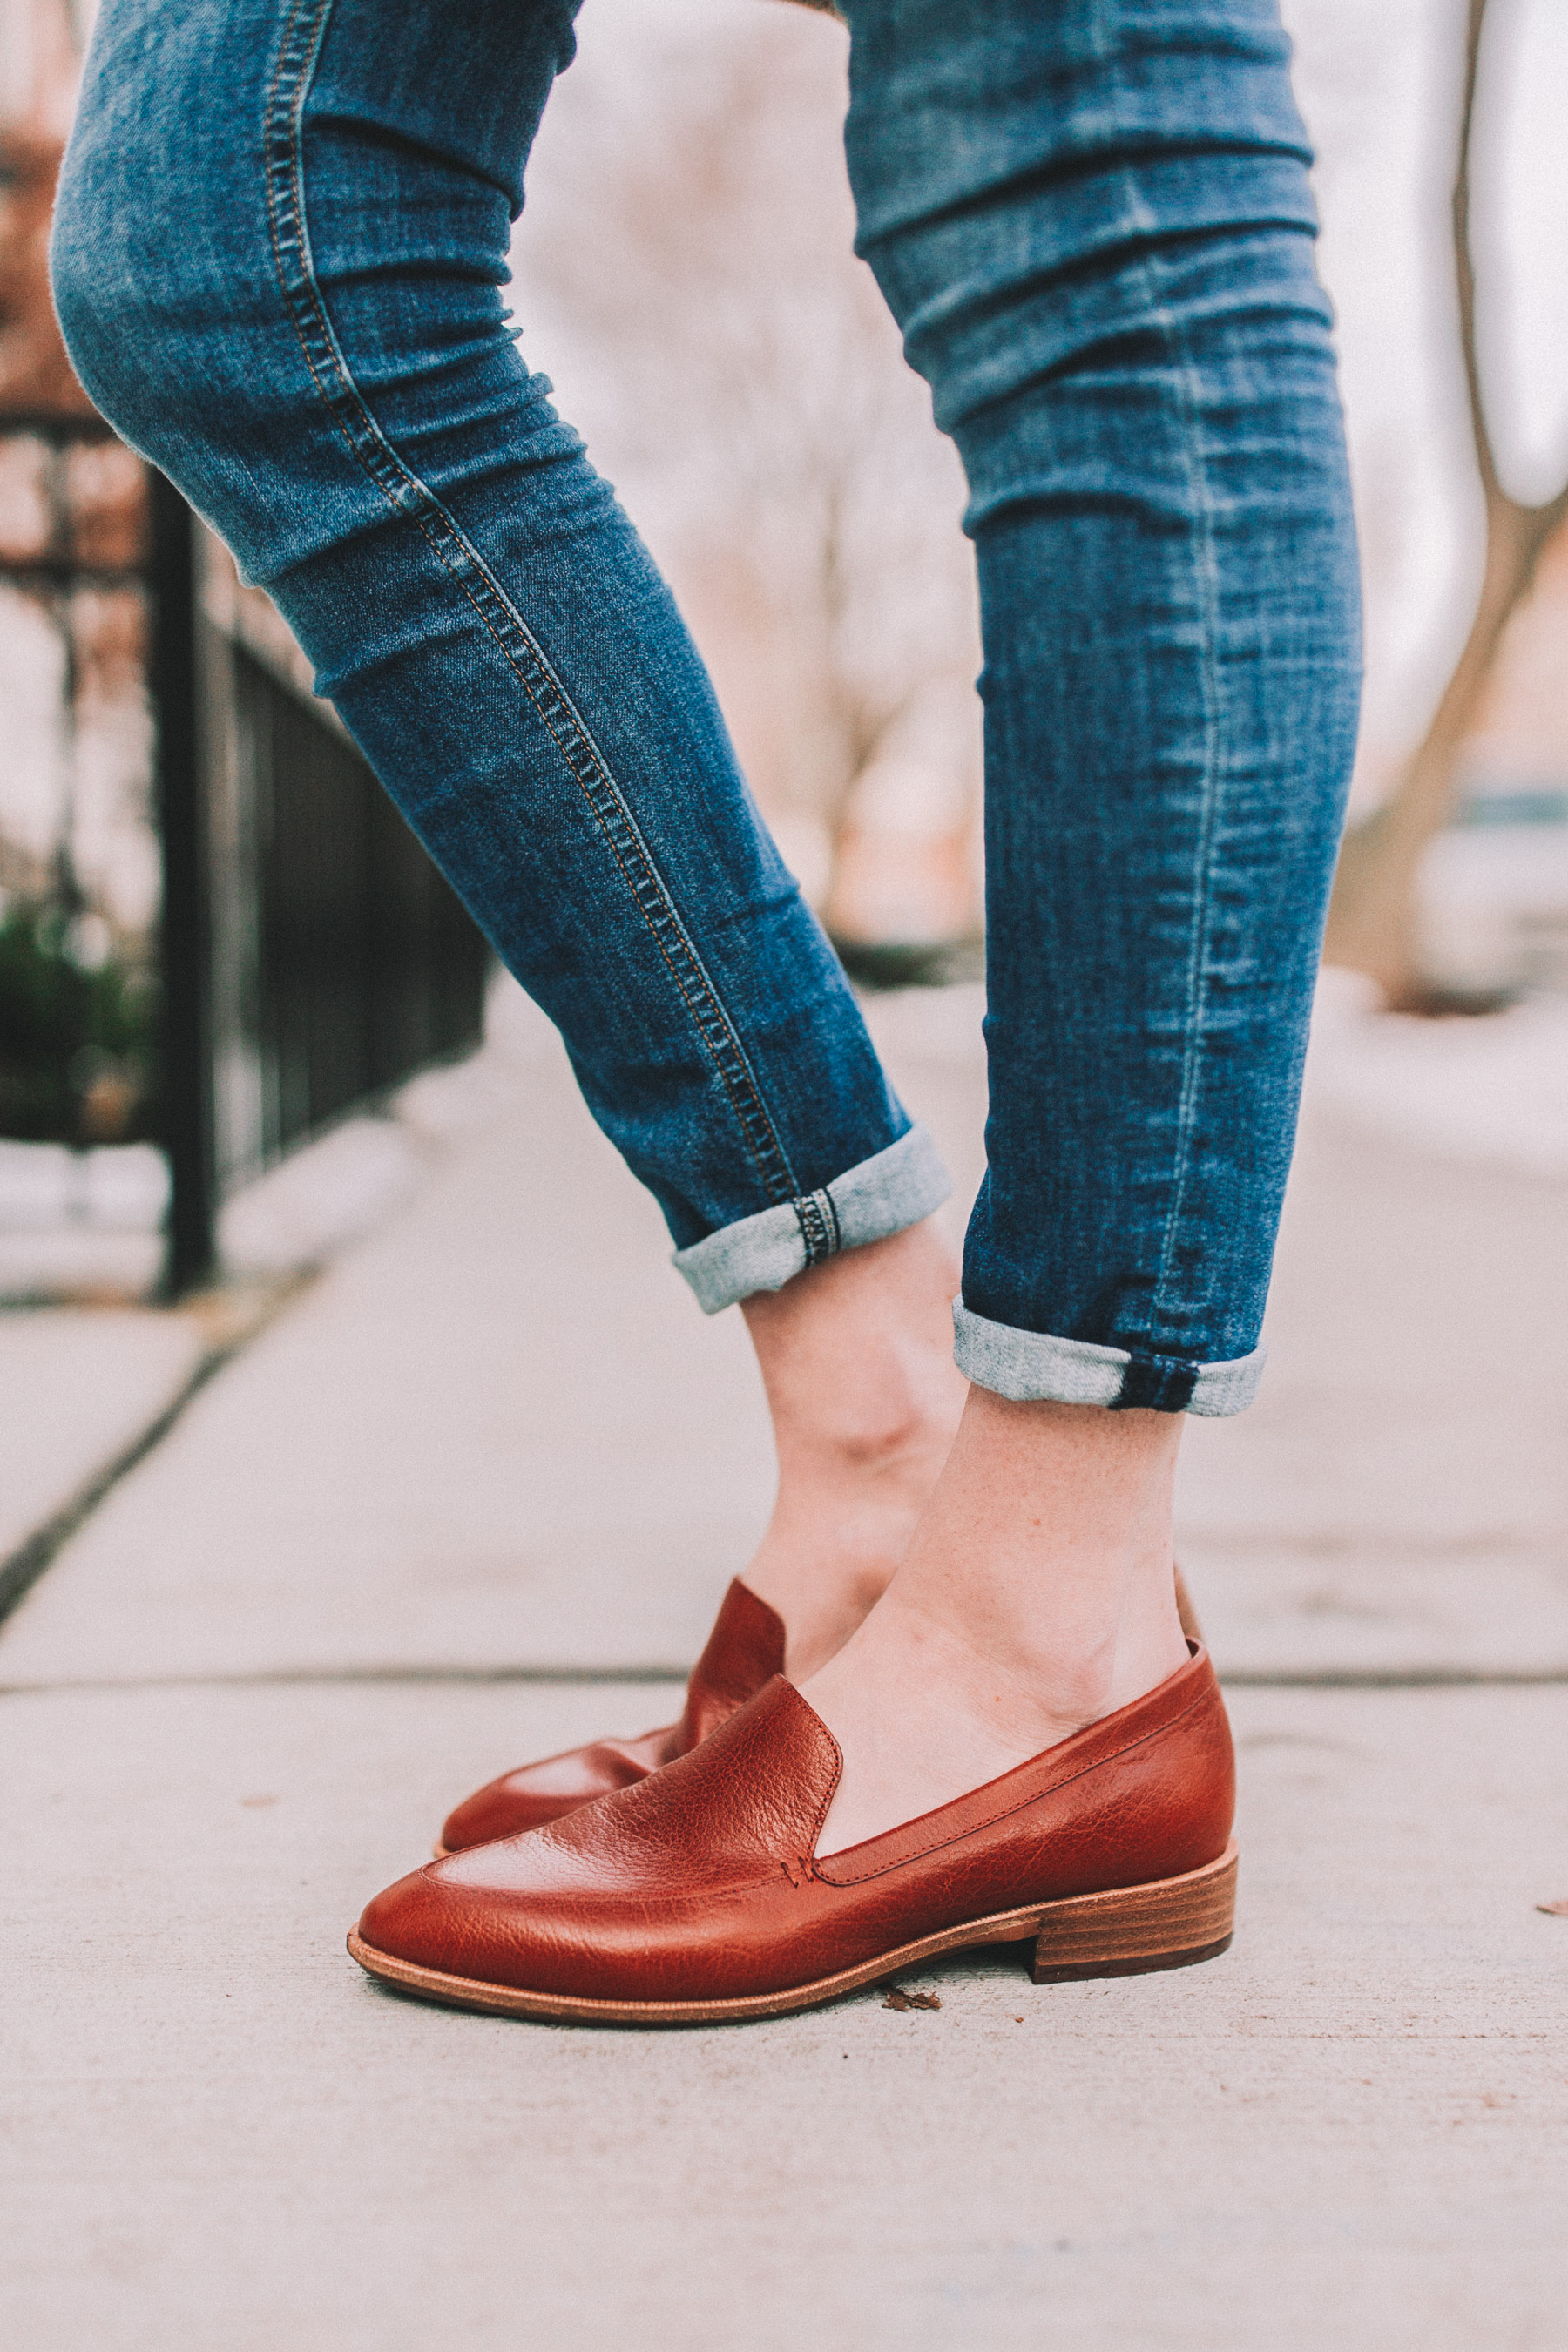 ca7cec56243 Madewell Frances Loafers in New Colors - Kelly in the City